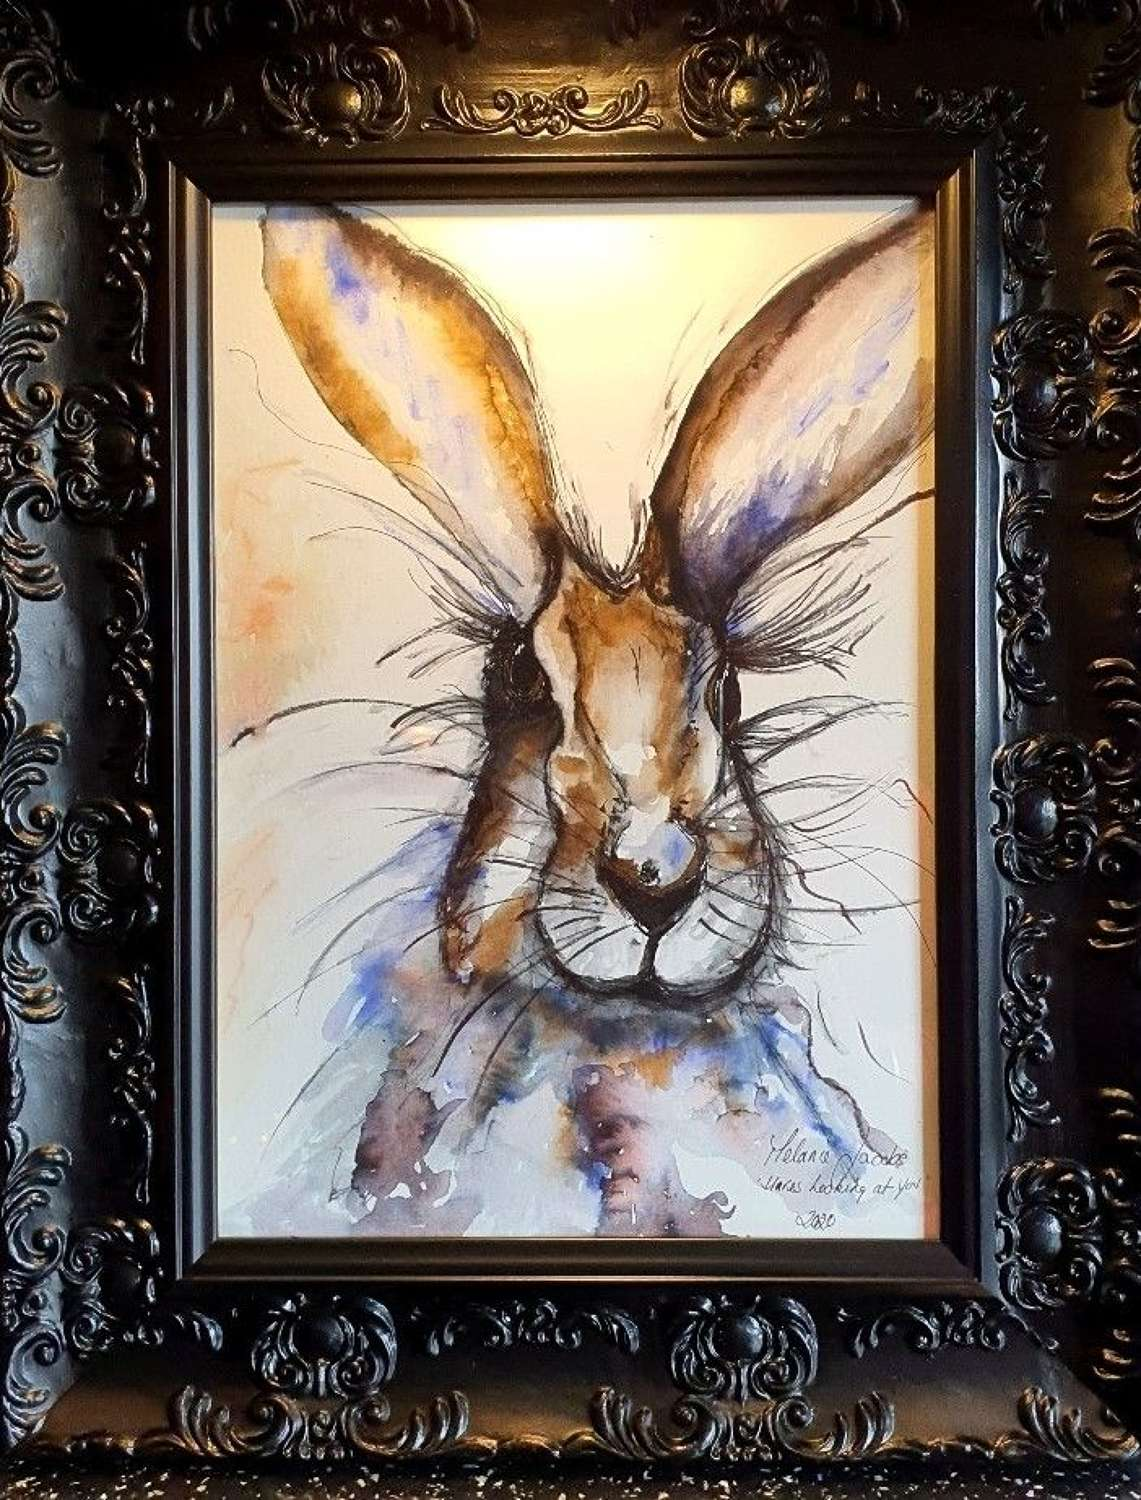 'Hares Looking At You' - Original Watercolour By Melanie Jacobs